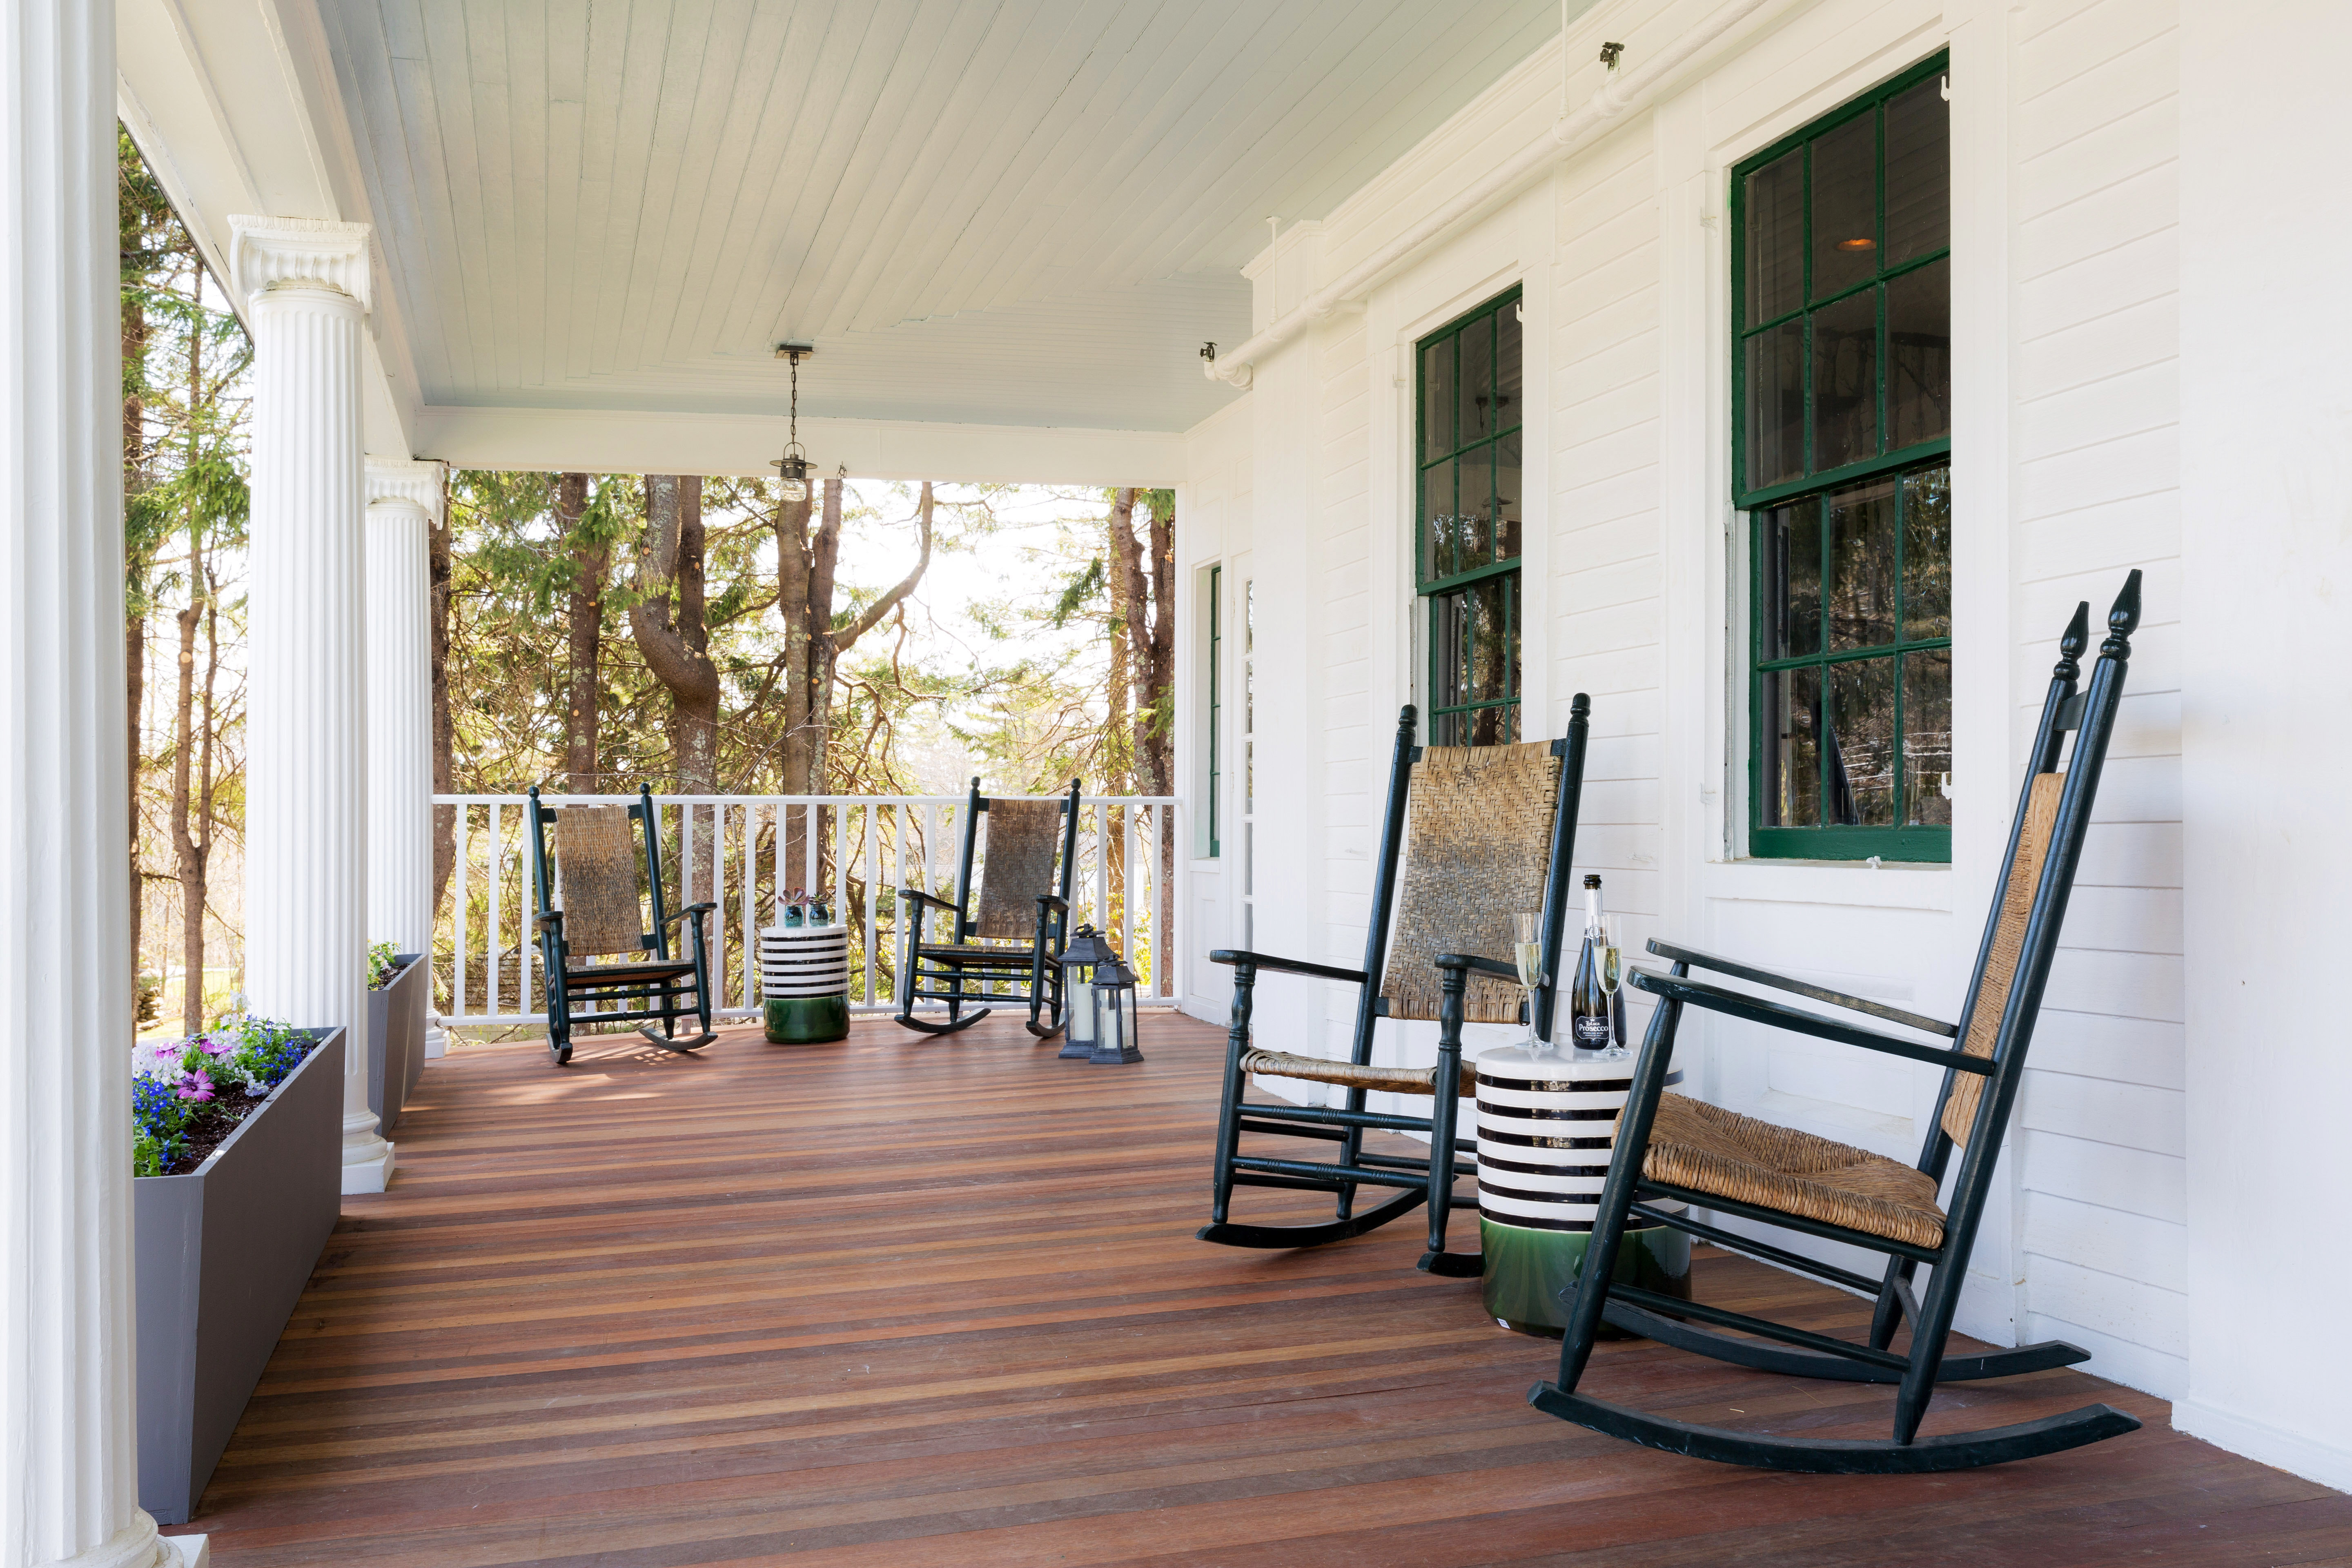 B&B Boutique Budget Deck Hip property porch home house hardwood living room stairs cottage wood flooring outdoor structure flooring mansion farmhouse